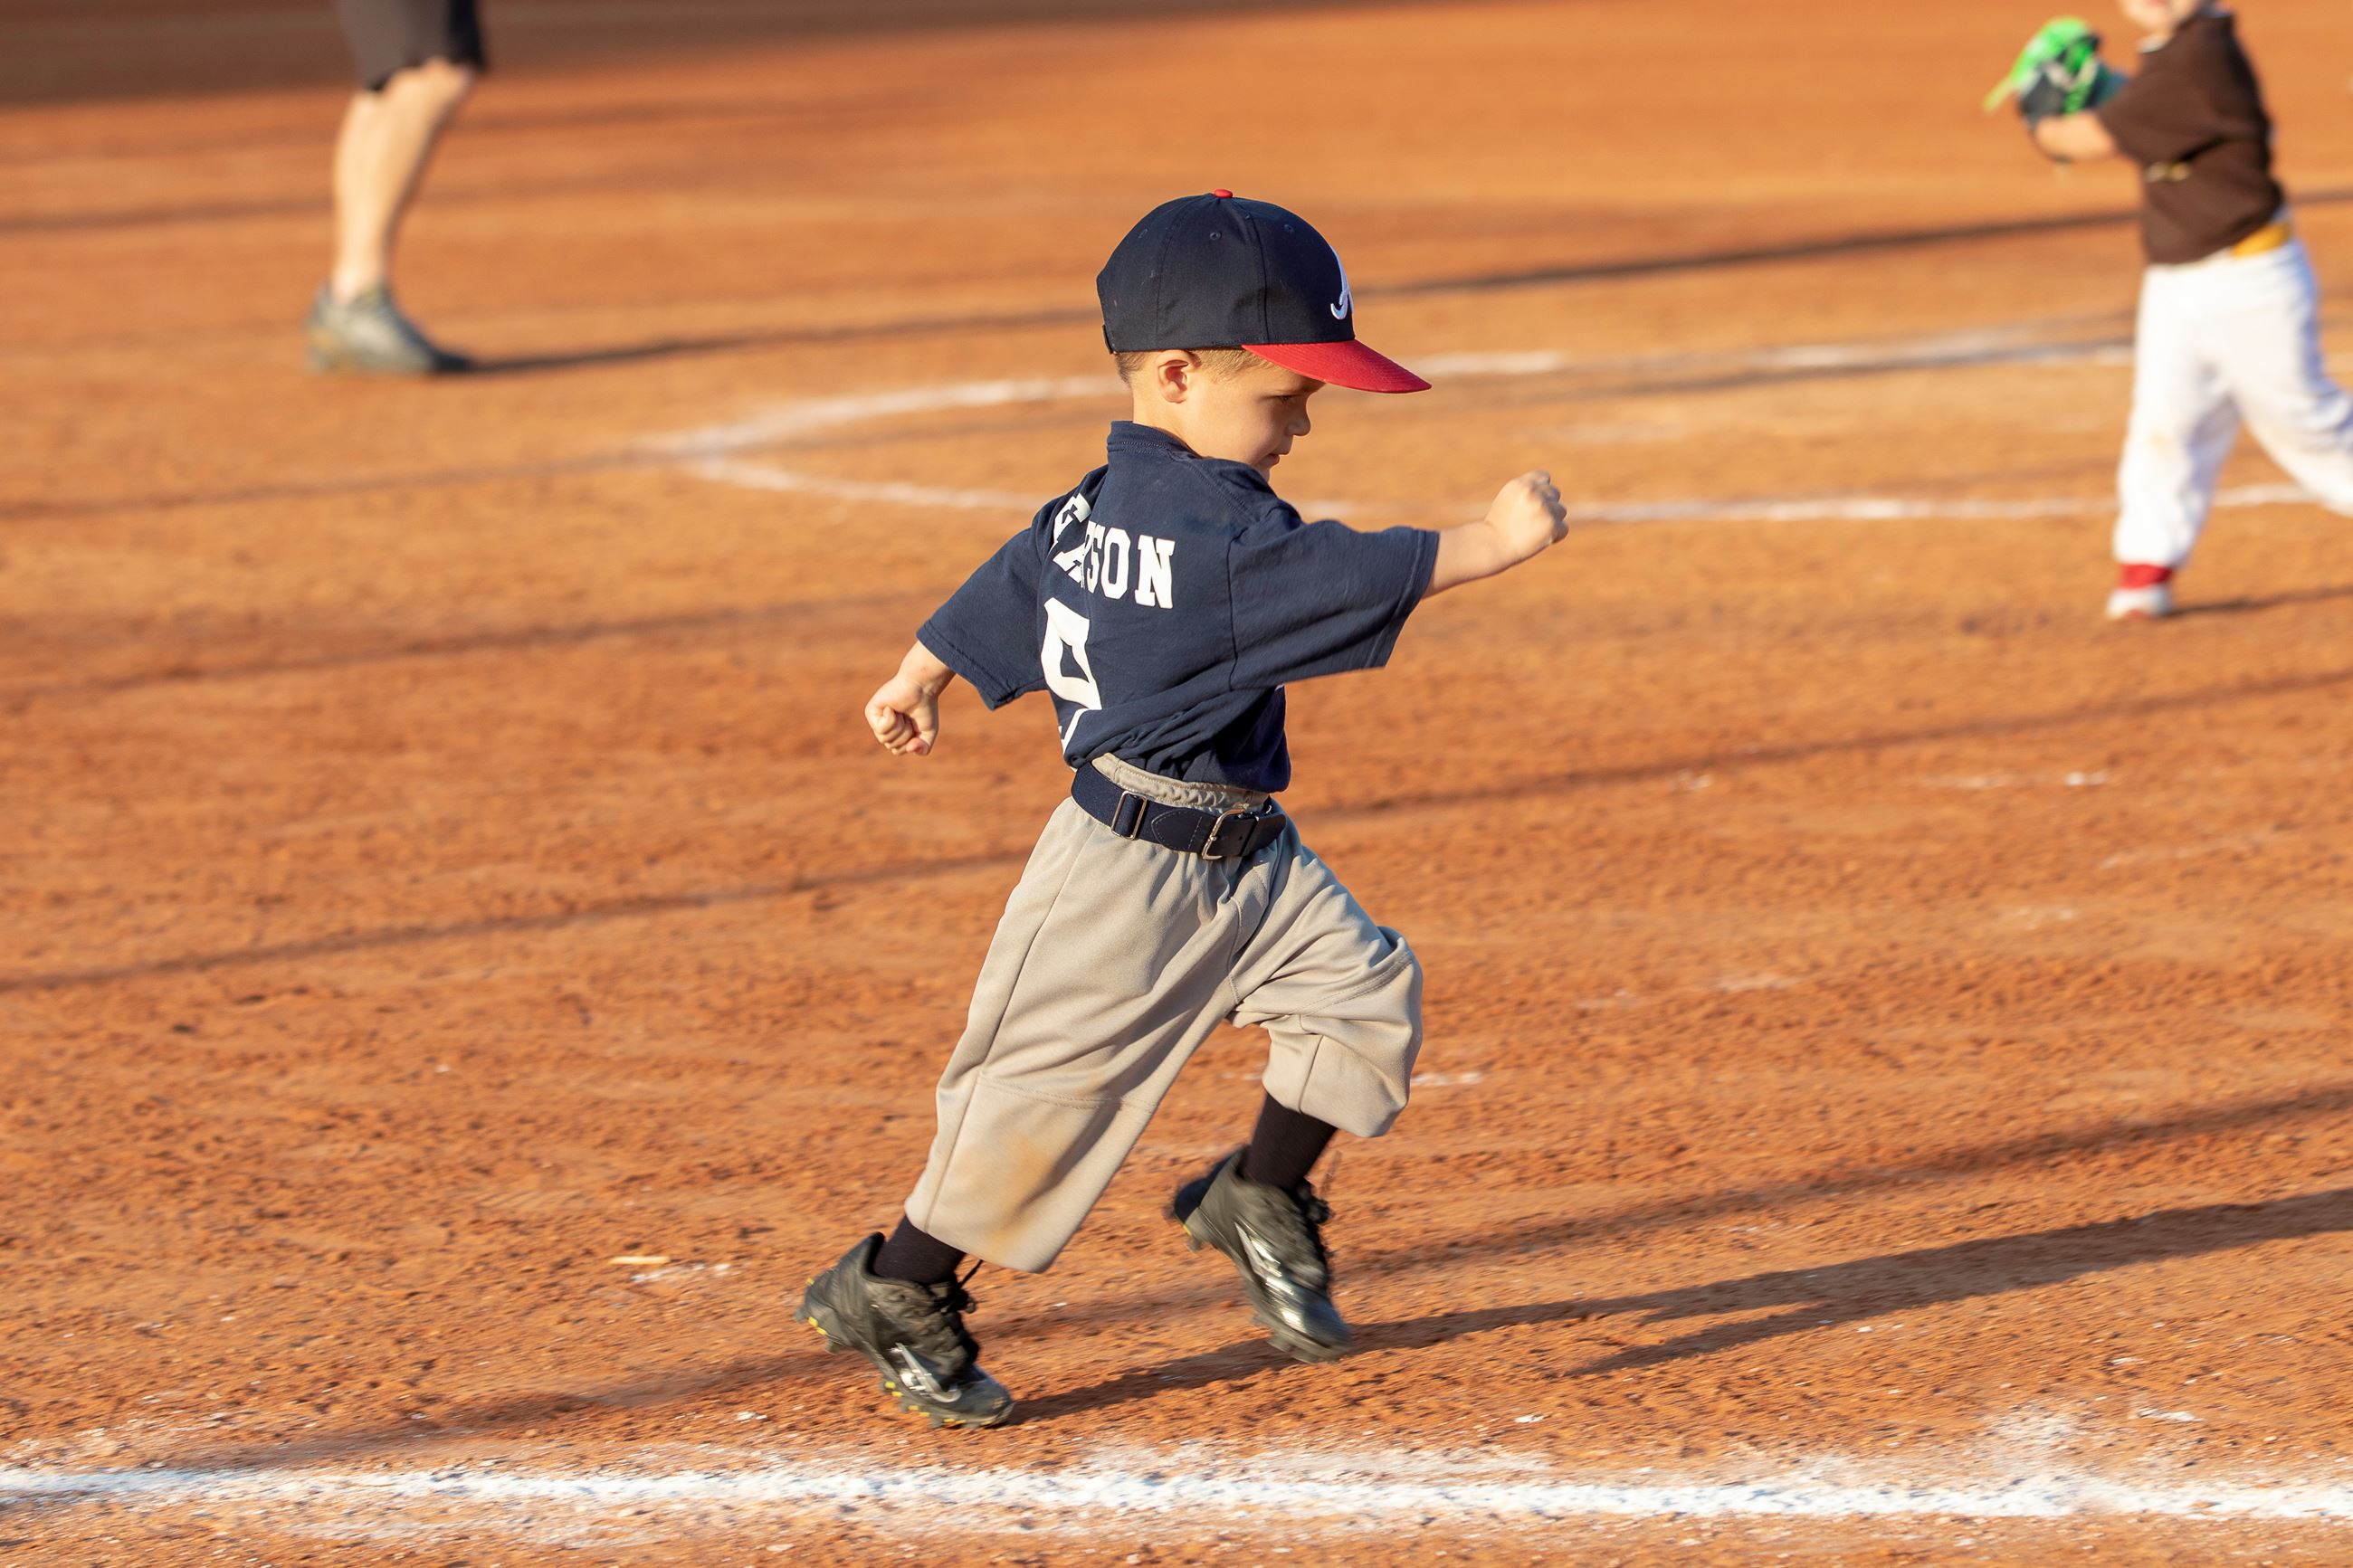 Image of little boy running to first base.